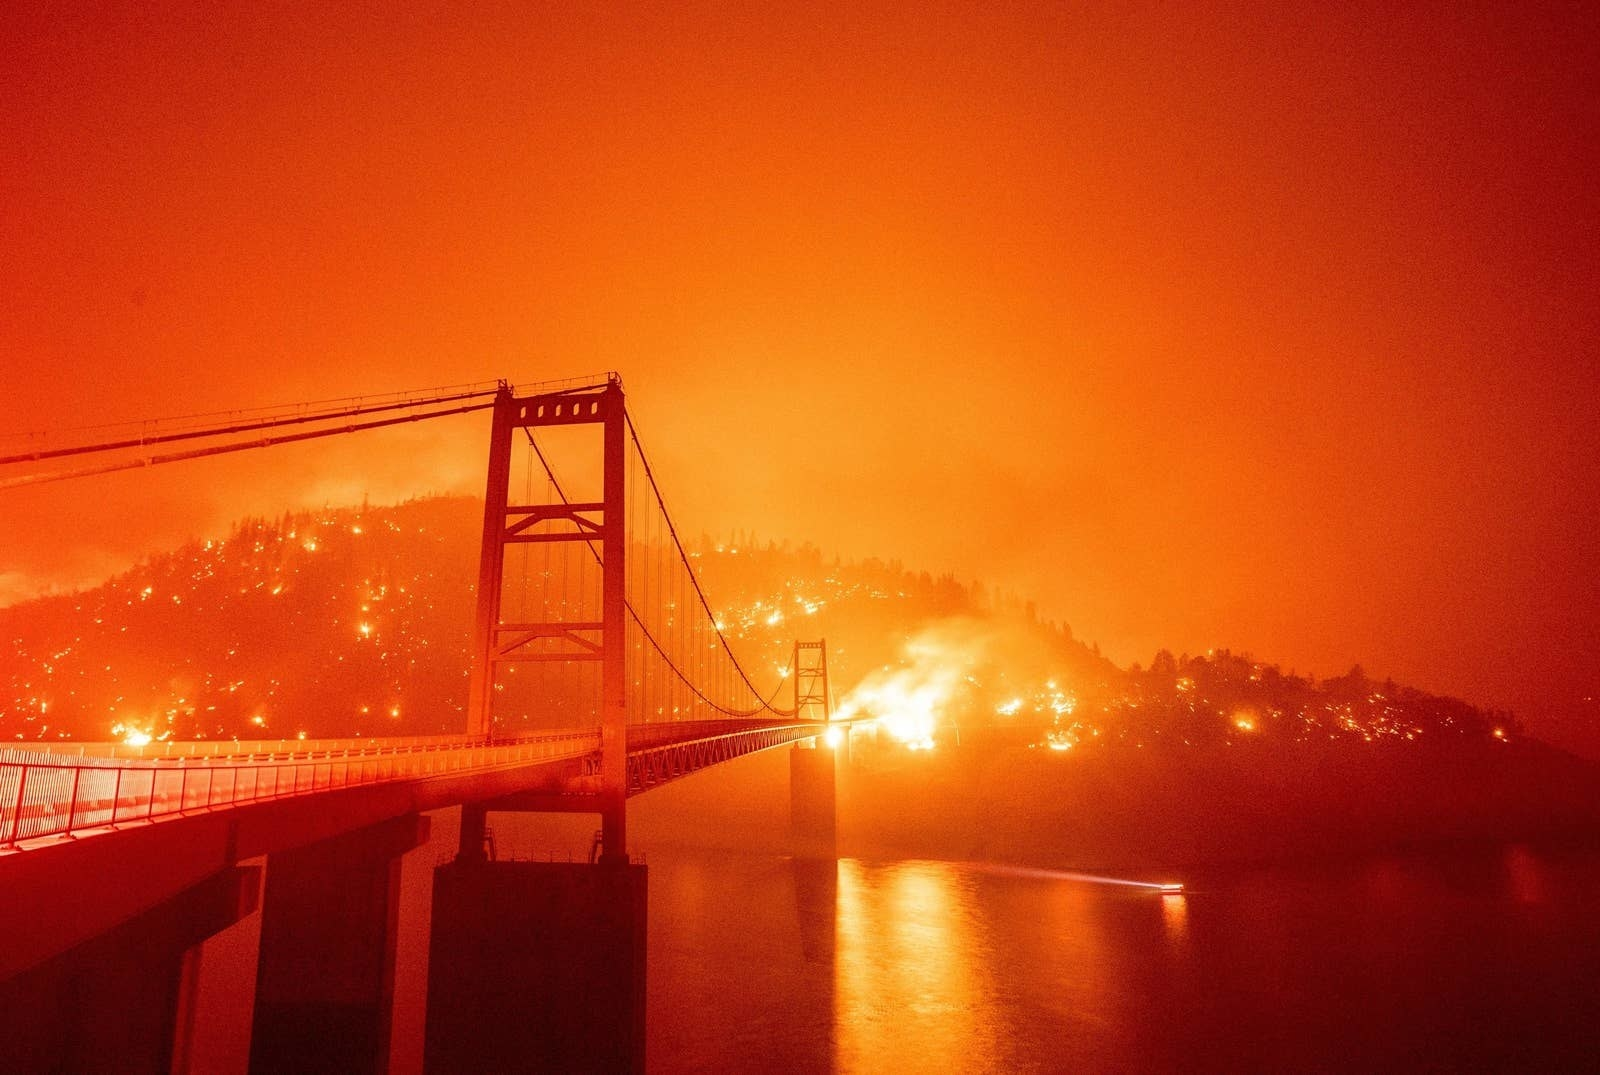 A flaming hillside with a bridge in the foreground, with a bright orange sky